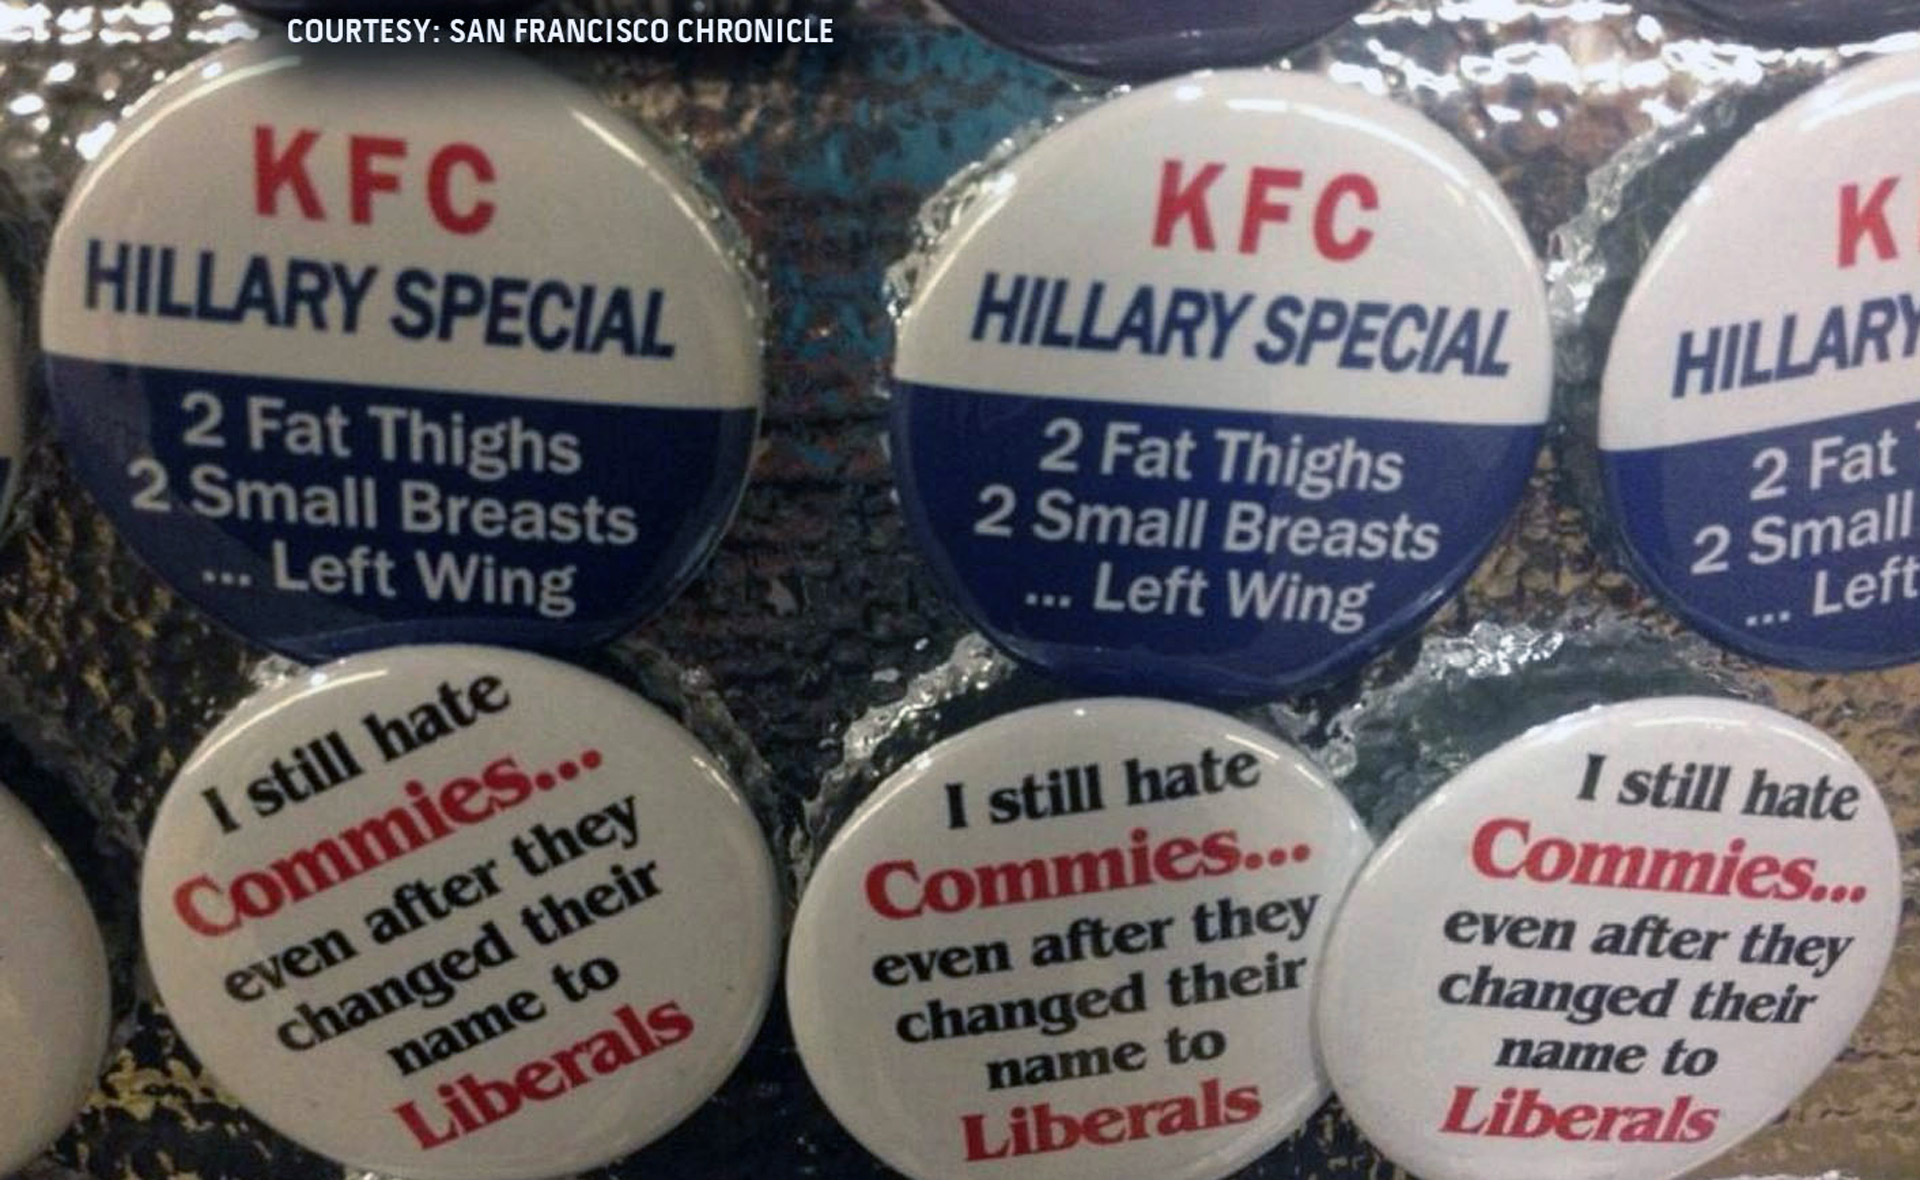 Republican Party Convention in Anaheim. San Francisco Chronicle, October 2013.